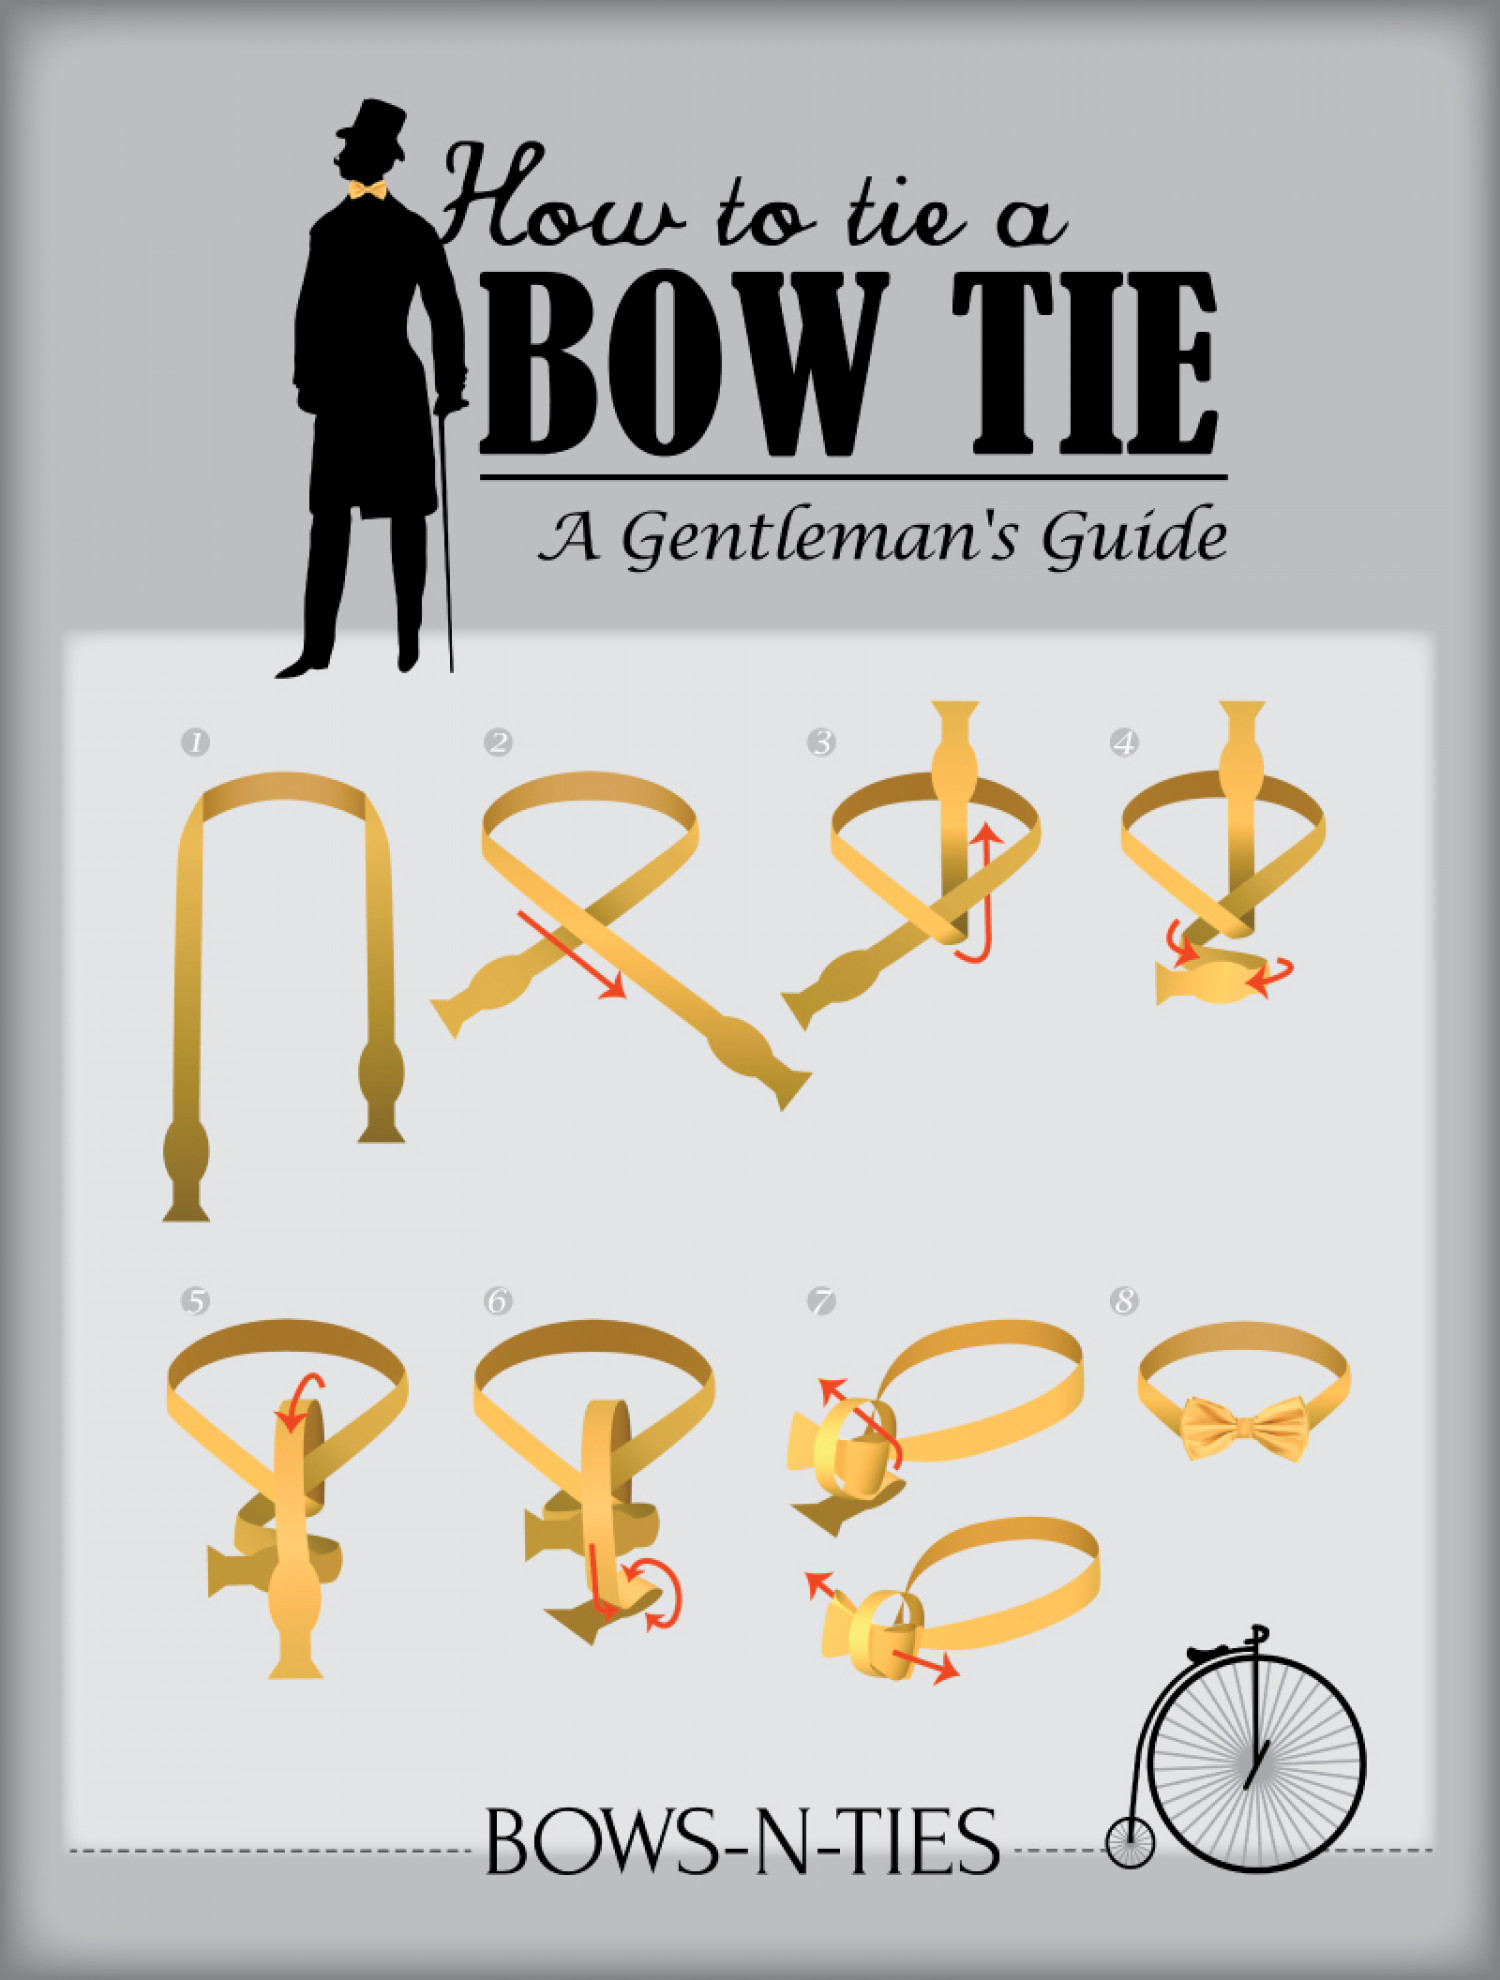 Gentlemans guide to tying a bow tie visual gentlemans guide to tying a bow tie infographic ccuart Gallery